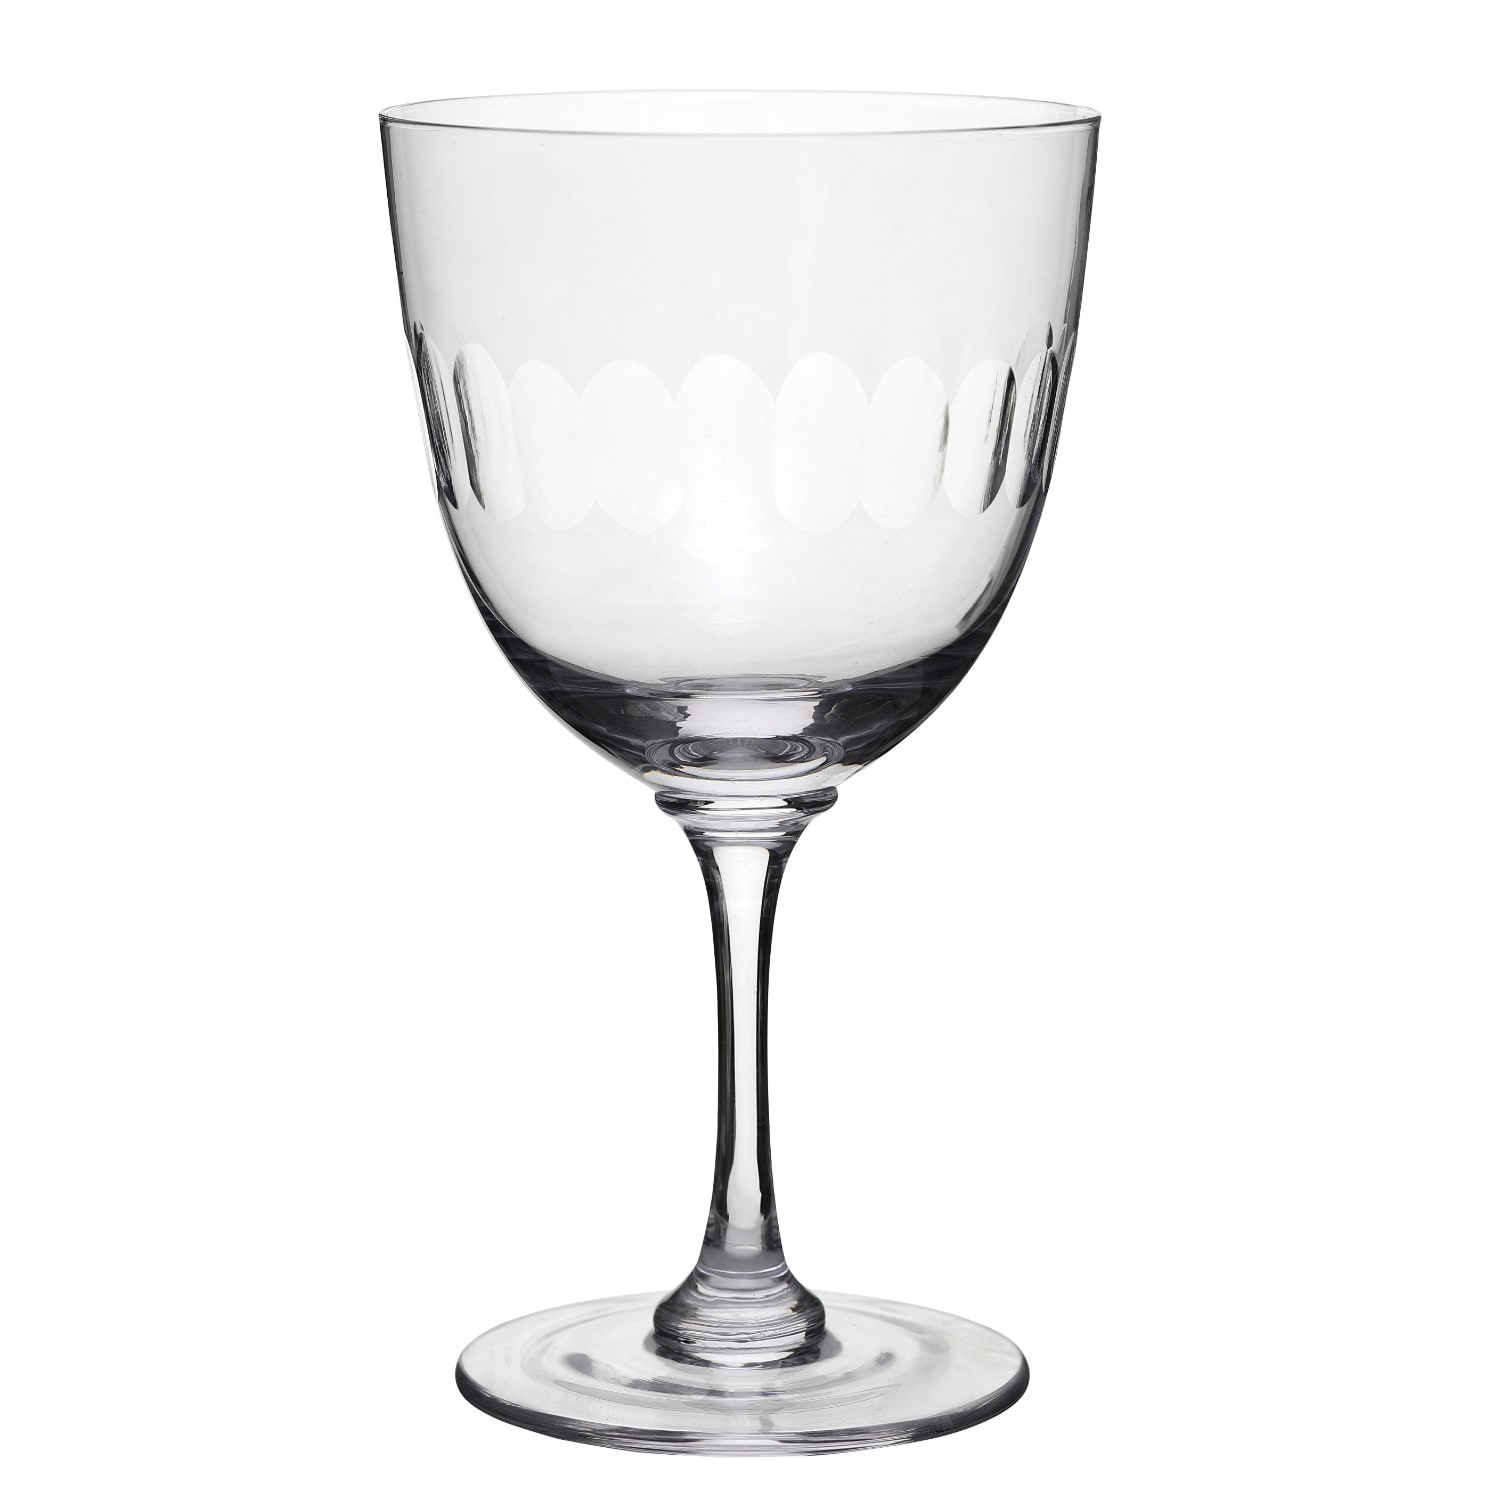 The Vintage List - Six Hand-Engraved Crystal Wine Glasses With Lens Design